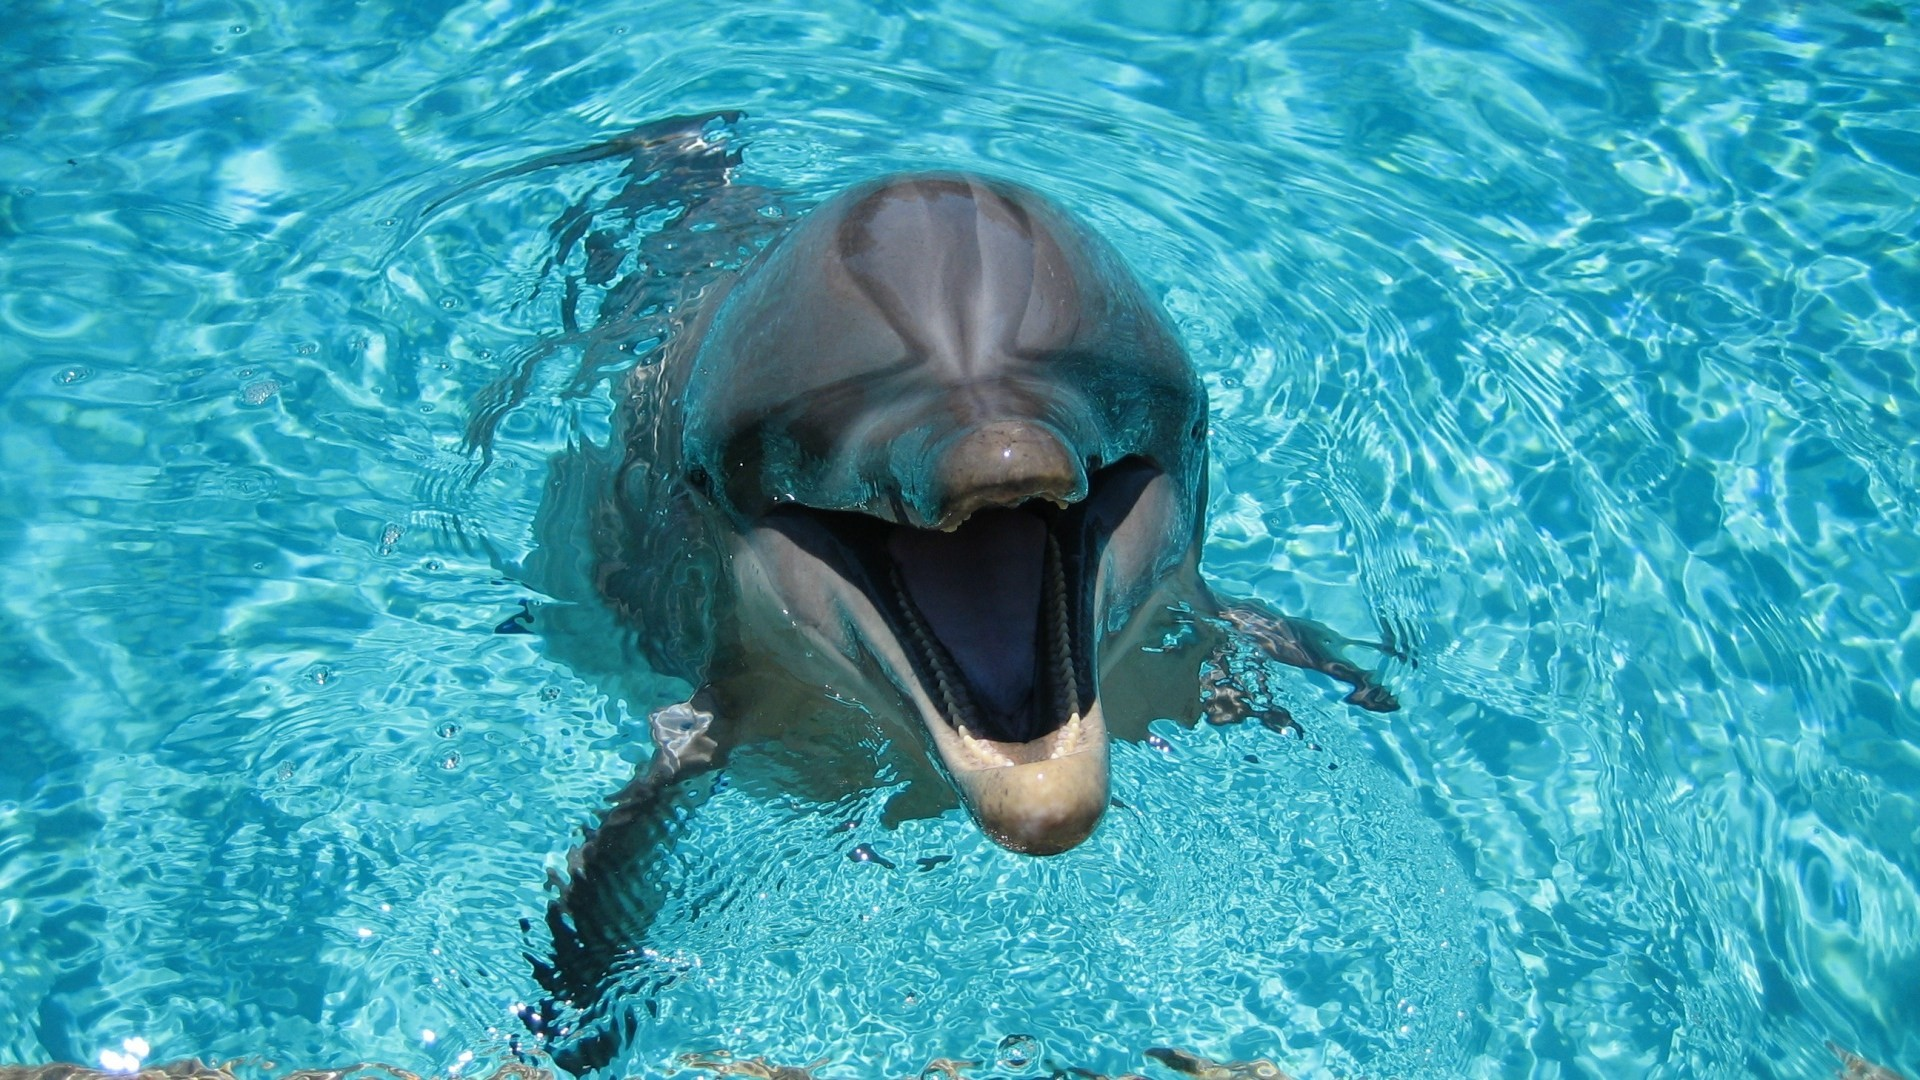 Res: 1920x1080, Download Dolphin Smiling and Playing In Water Wallpaper 1920×1080